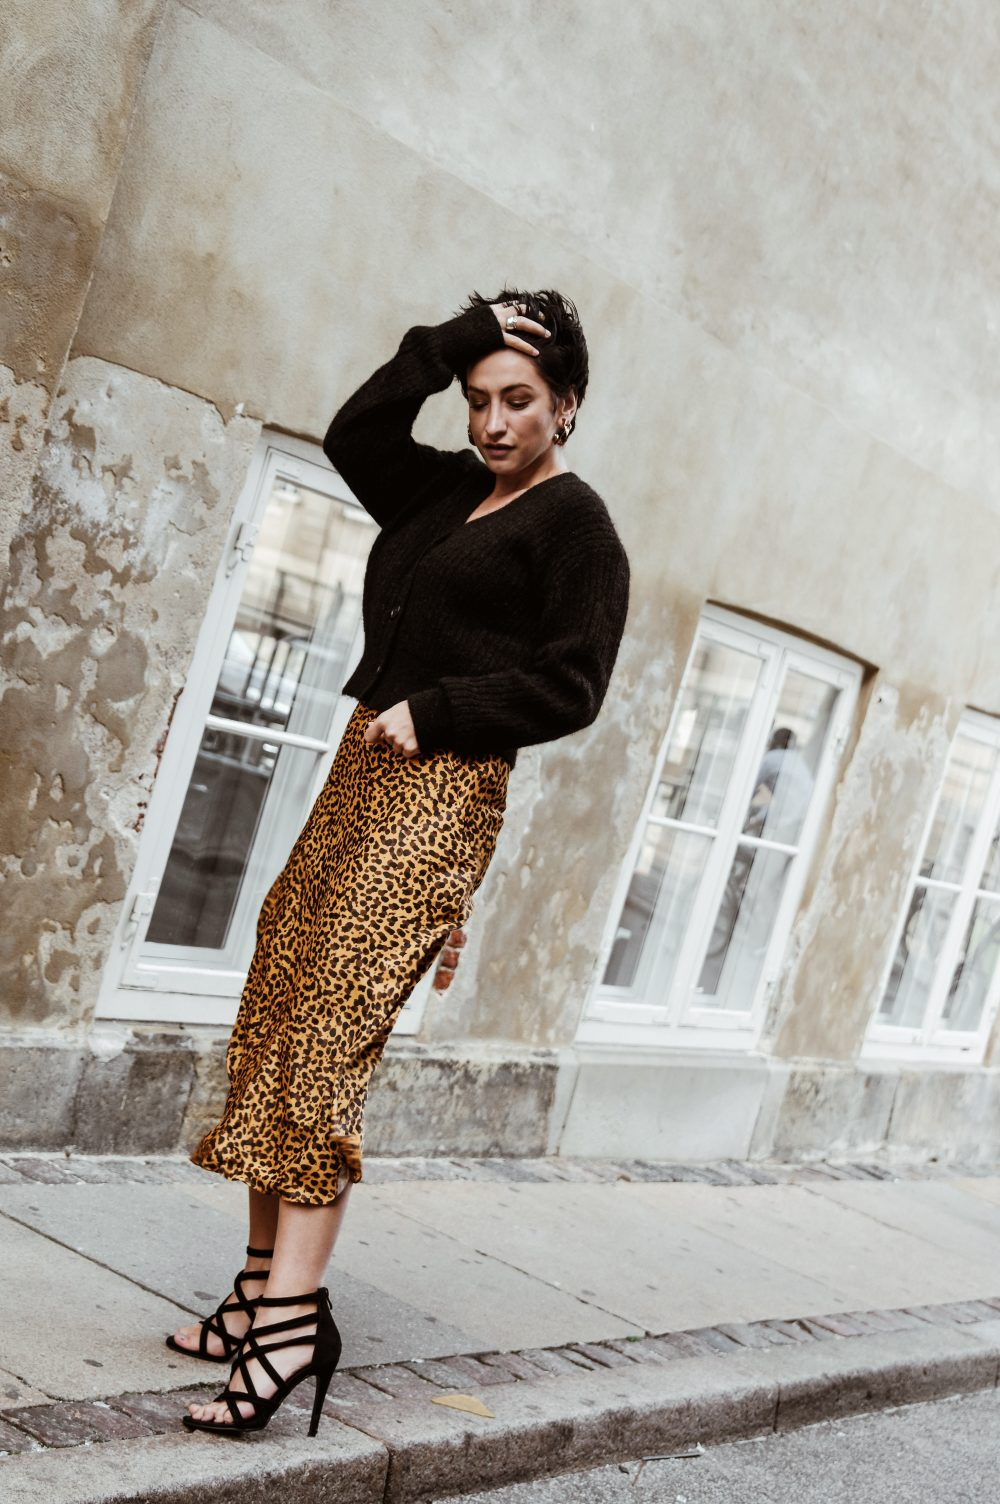 Fall-outfit-Sweater-and-leopard-skirt-scandinavian-outfit-streetstyle-how-to-find-a-hobby-that-you-like-why-having-a-hobby-is-important-motivational-personal-developement